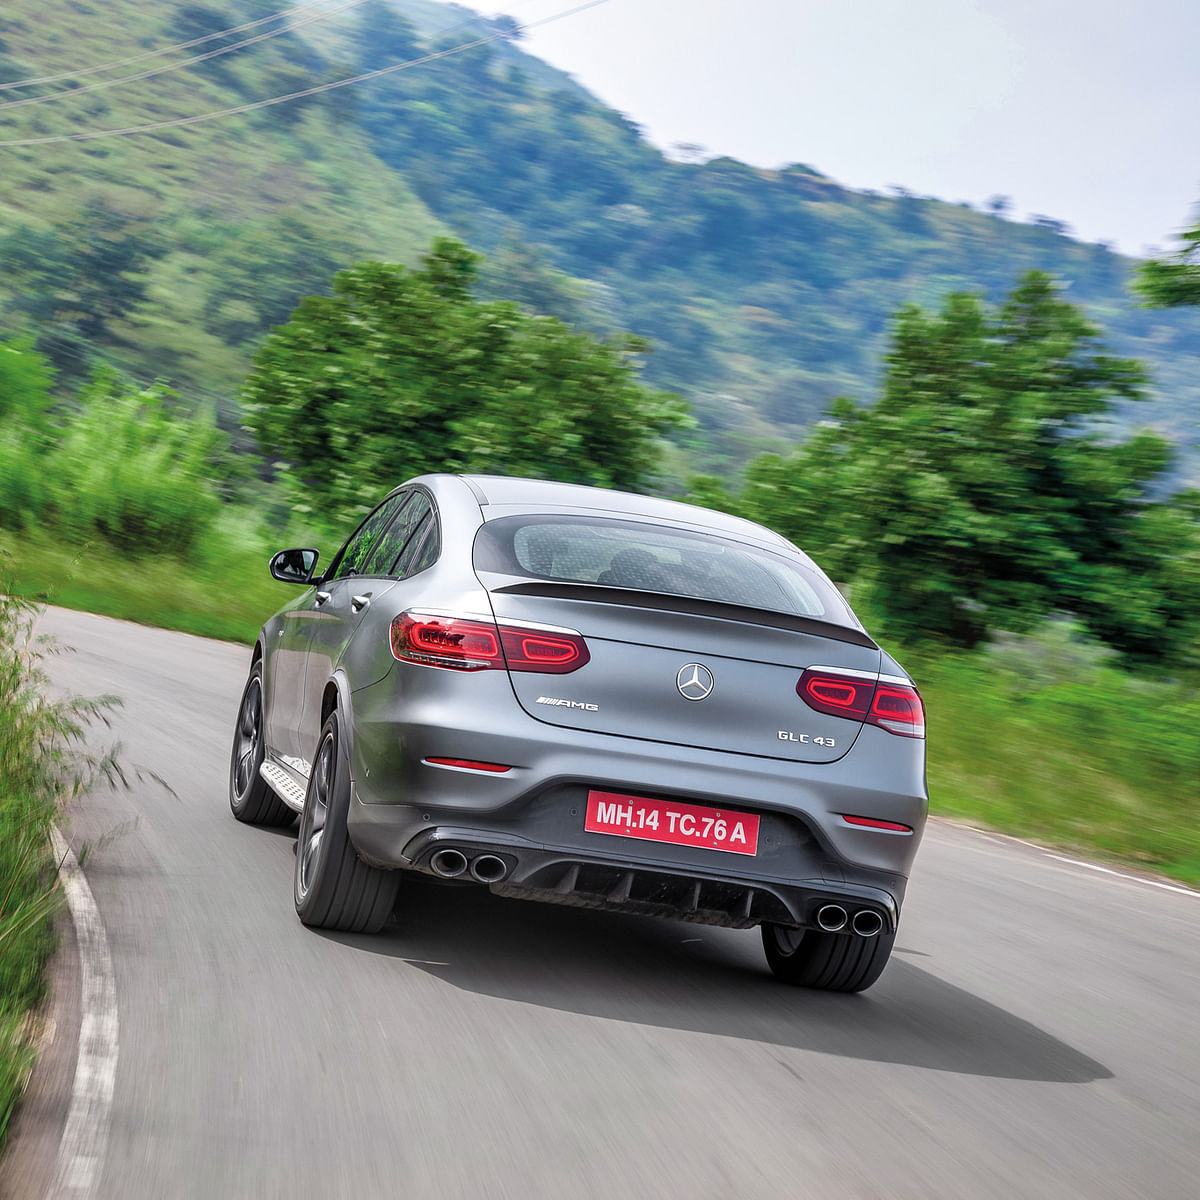 Mercedes-AMG GLC 43 Coupe review: First Made in India AMG is here!